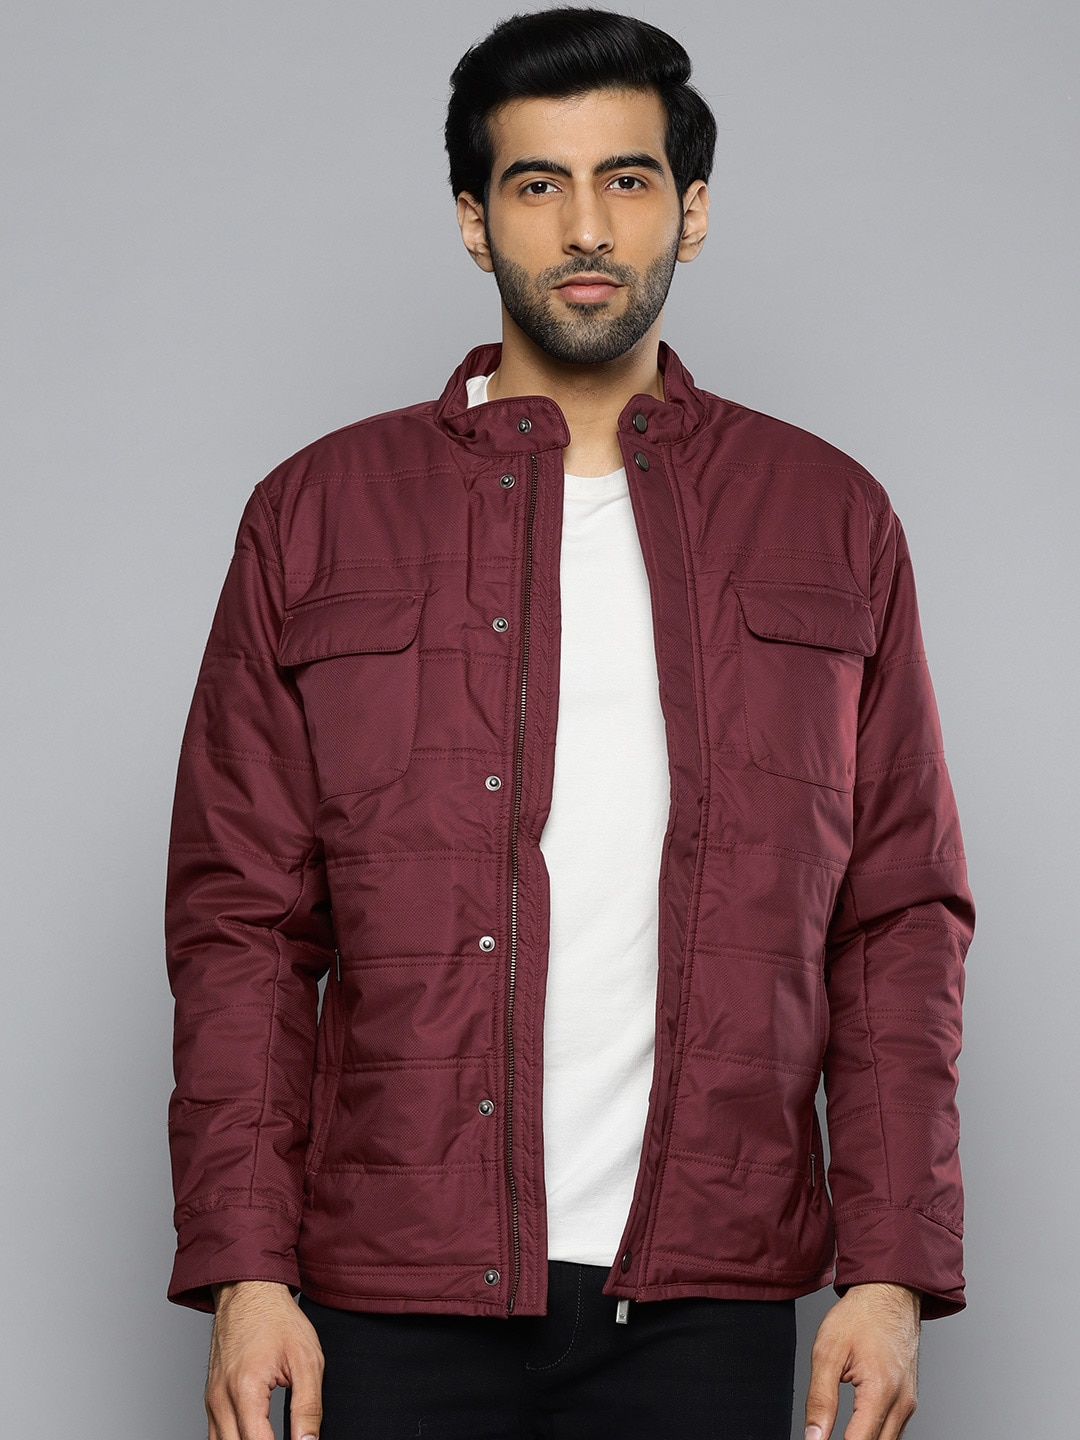 a9a7c7bfc81 Louis Philippe Jackets - Buy Louis Philippe Jacket Online